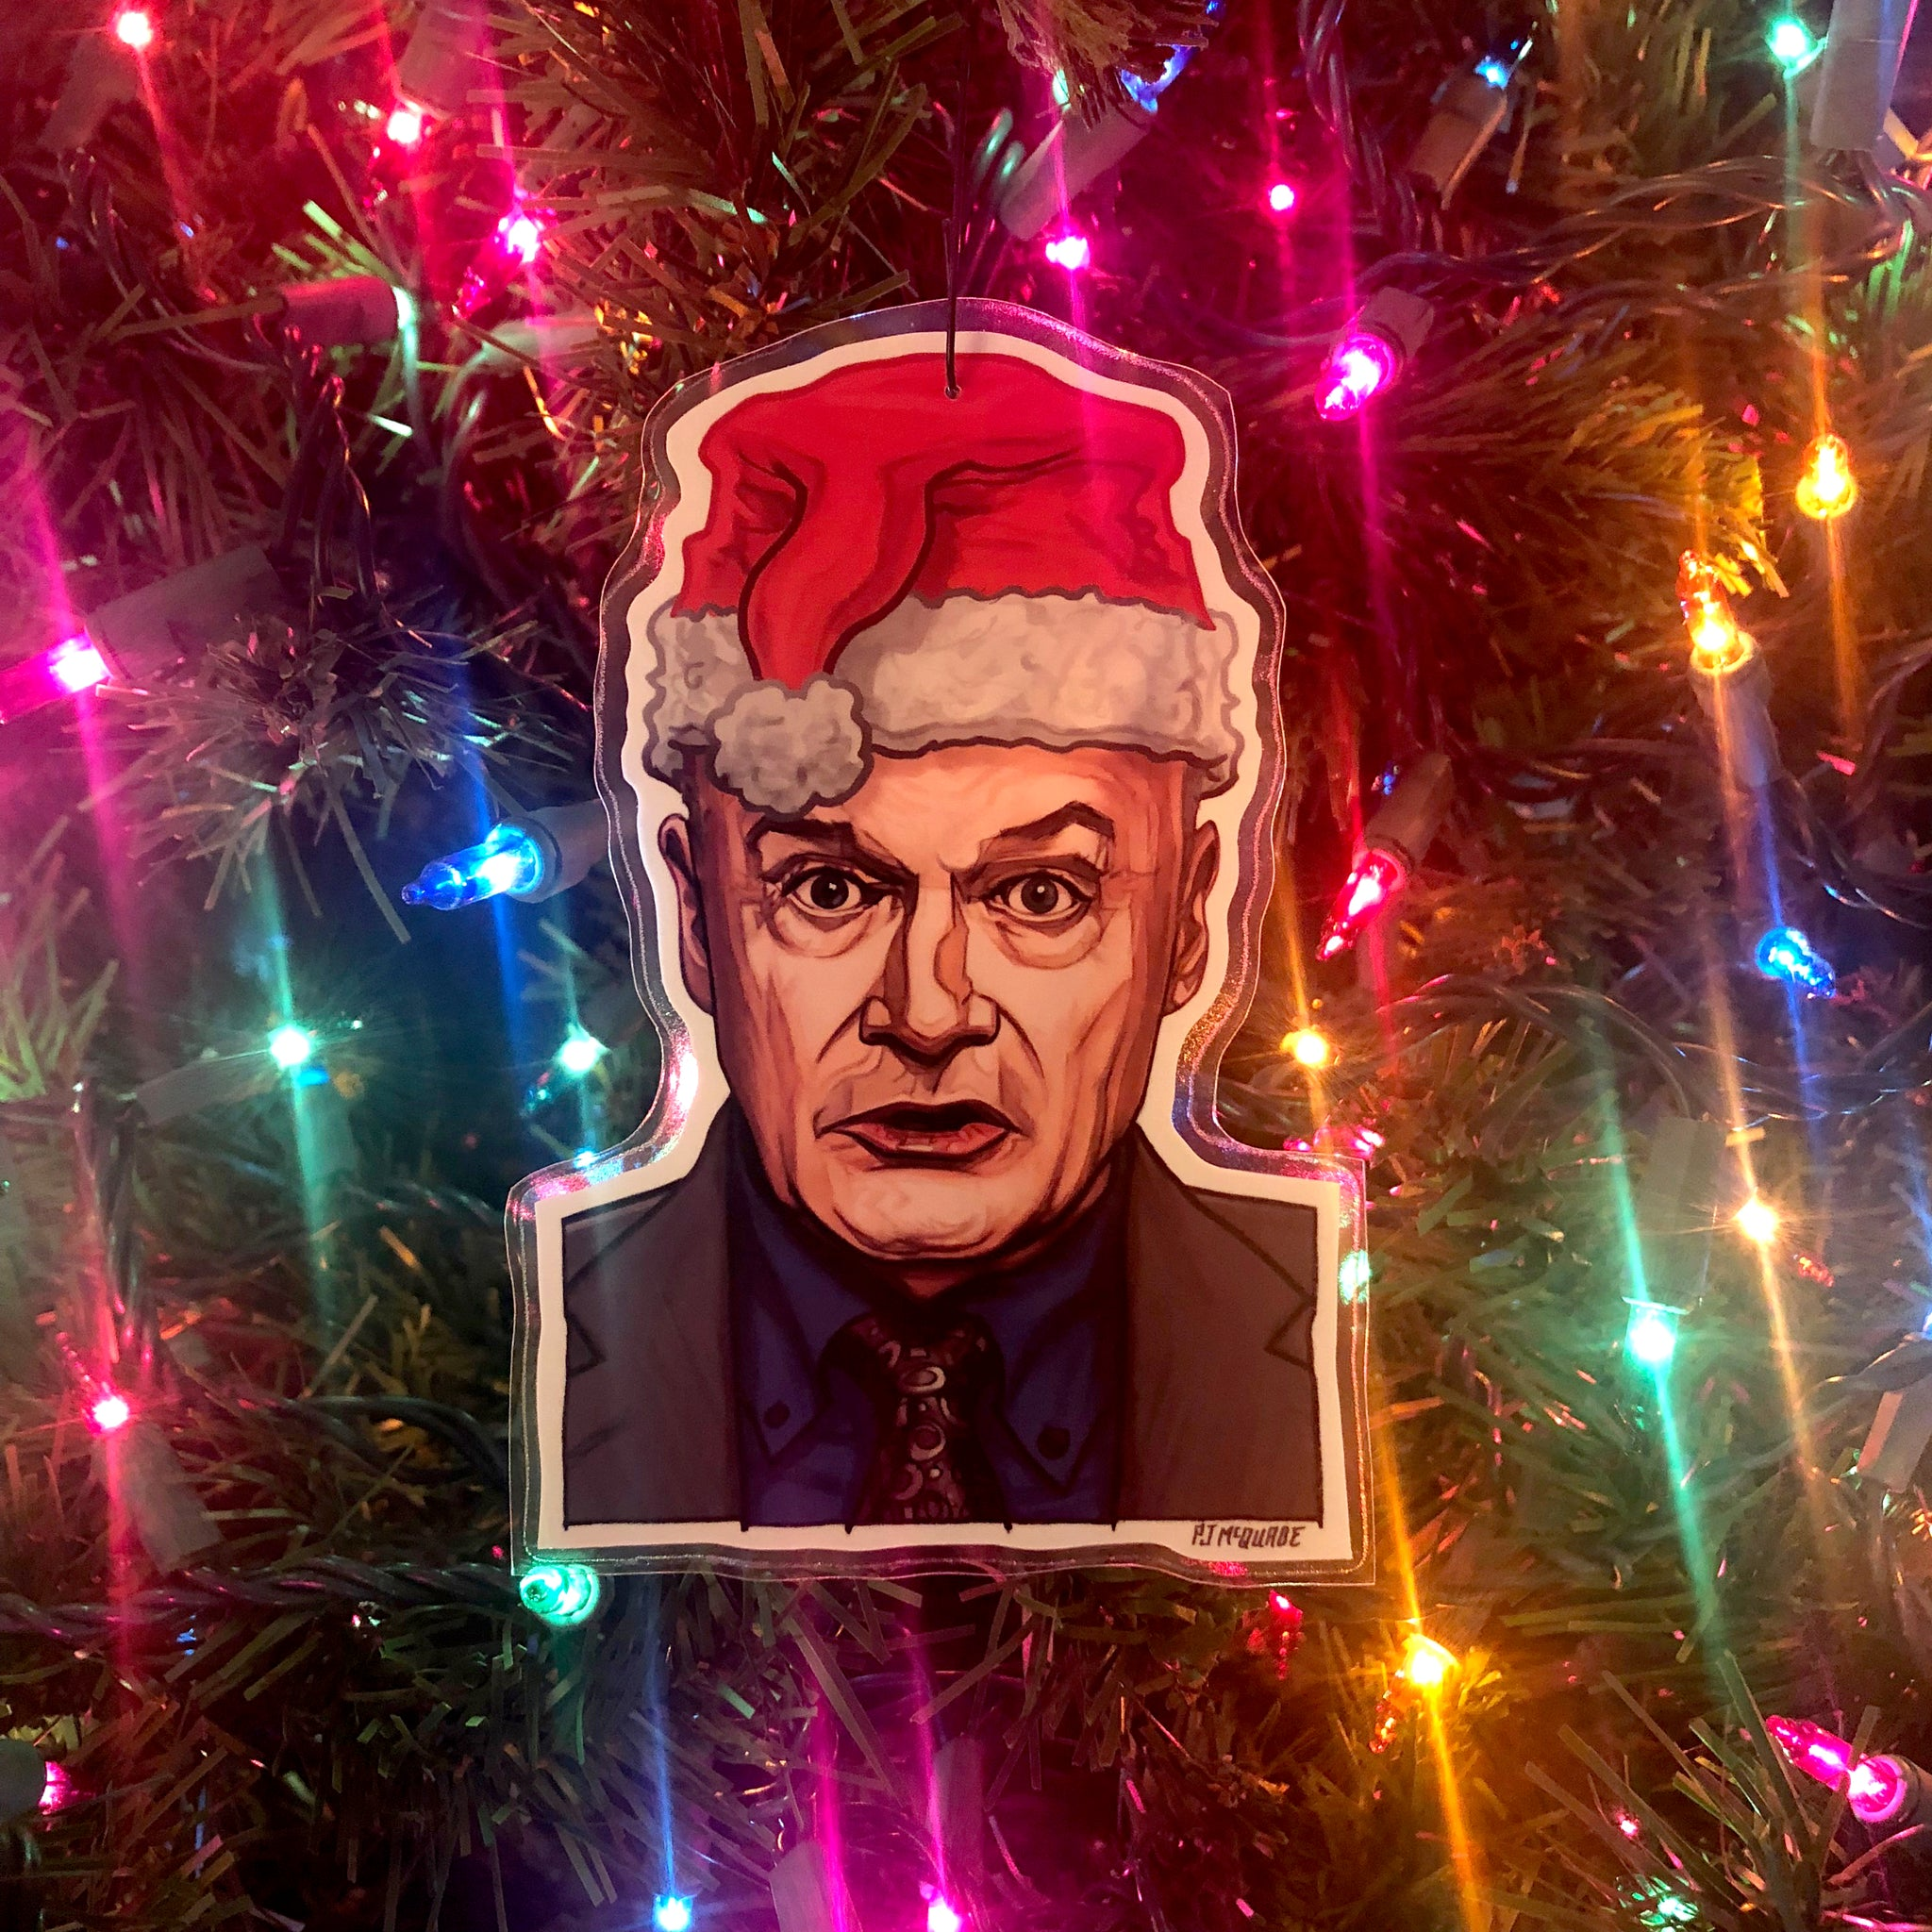 Creed THE OFFICE Christmas Ornament!